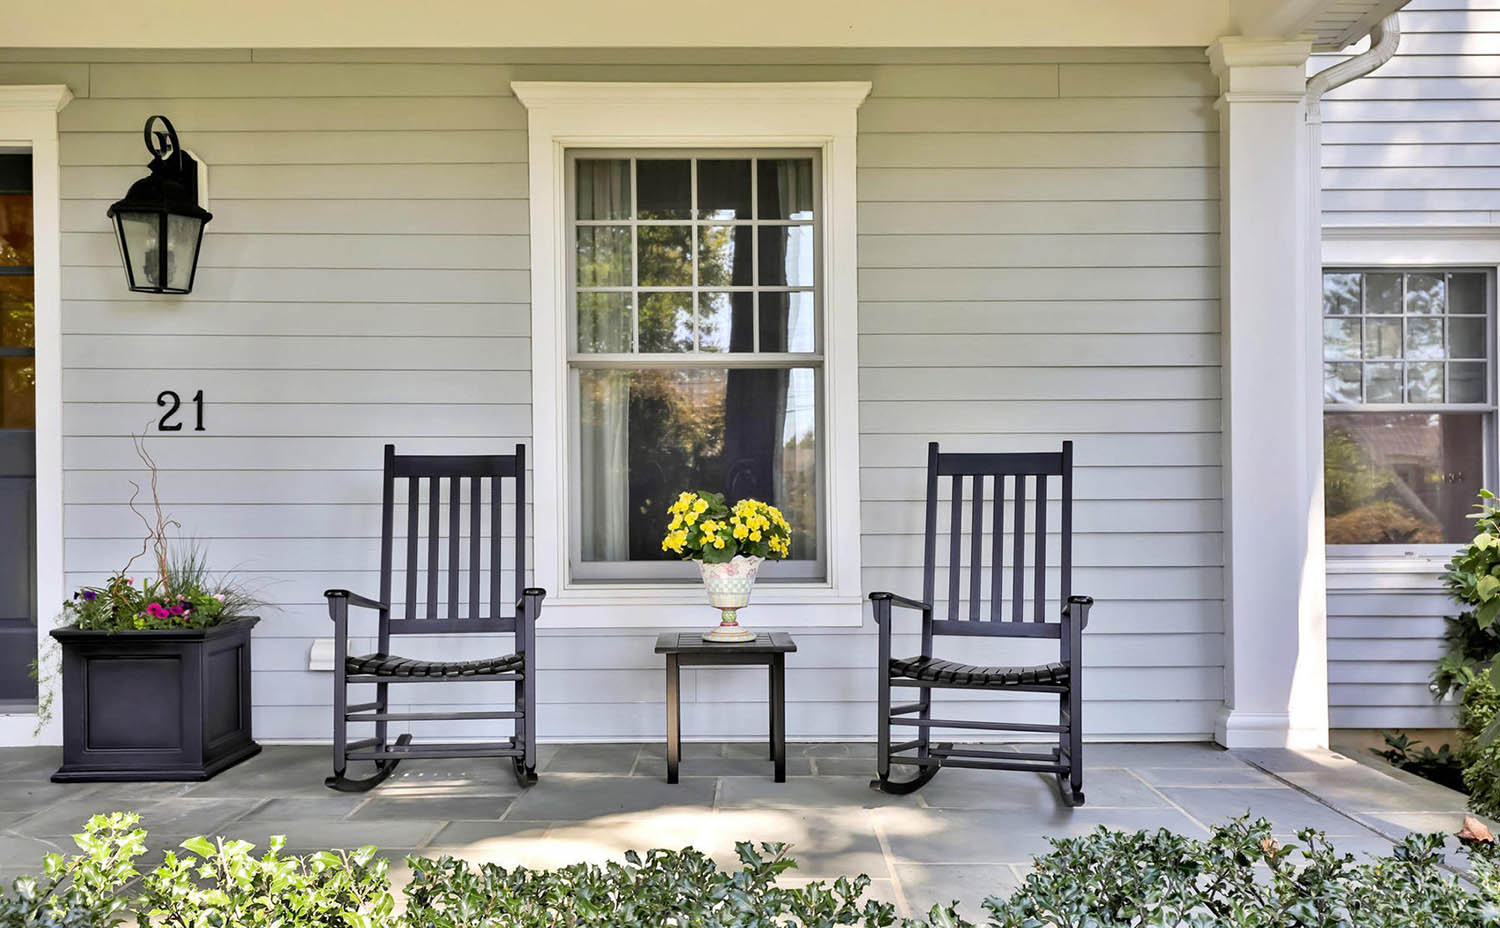 Gray house siding colors. Light gray lap siding with white window trim. Blue stone porch top. White columns.